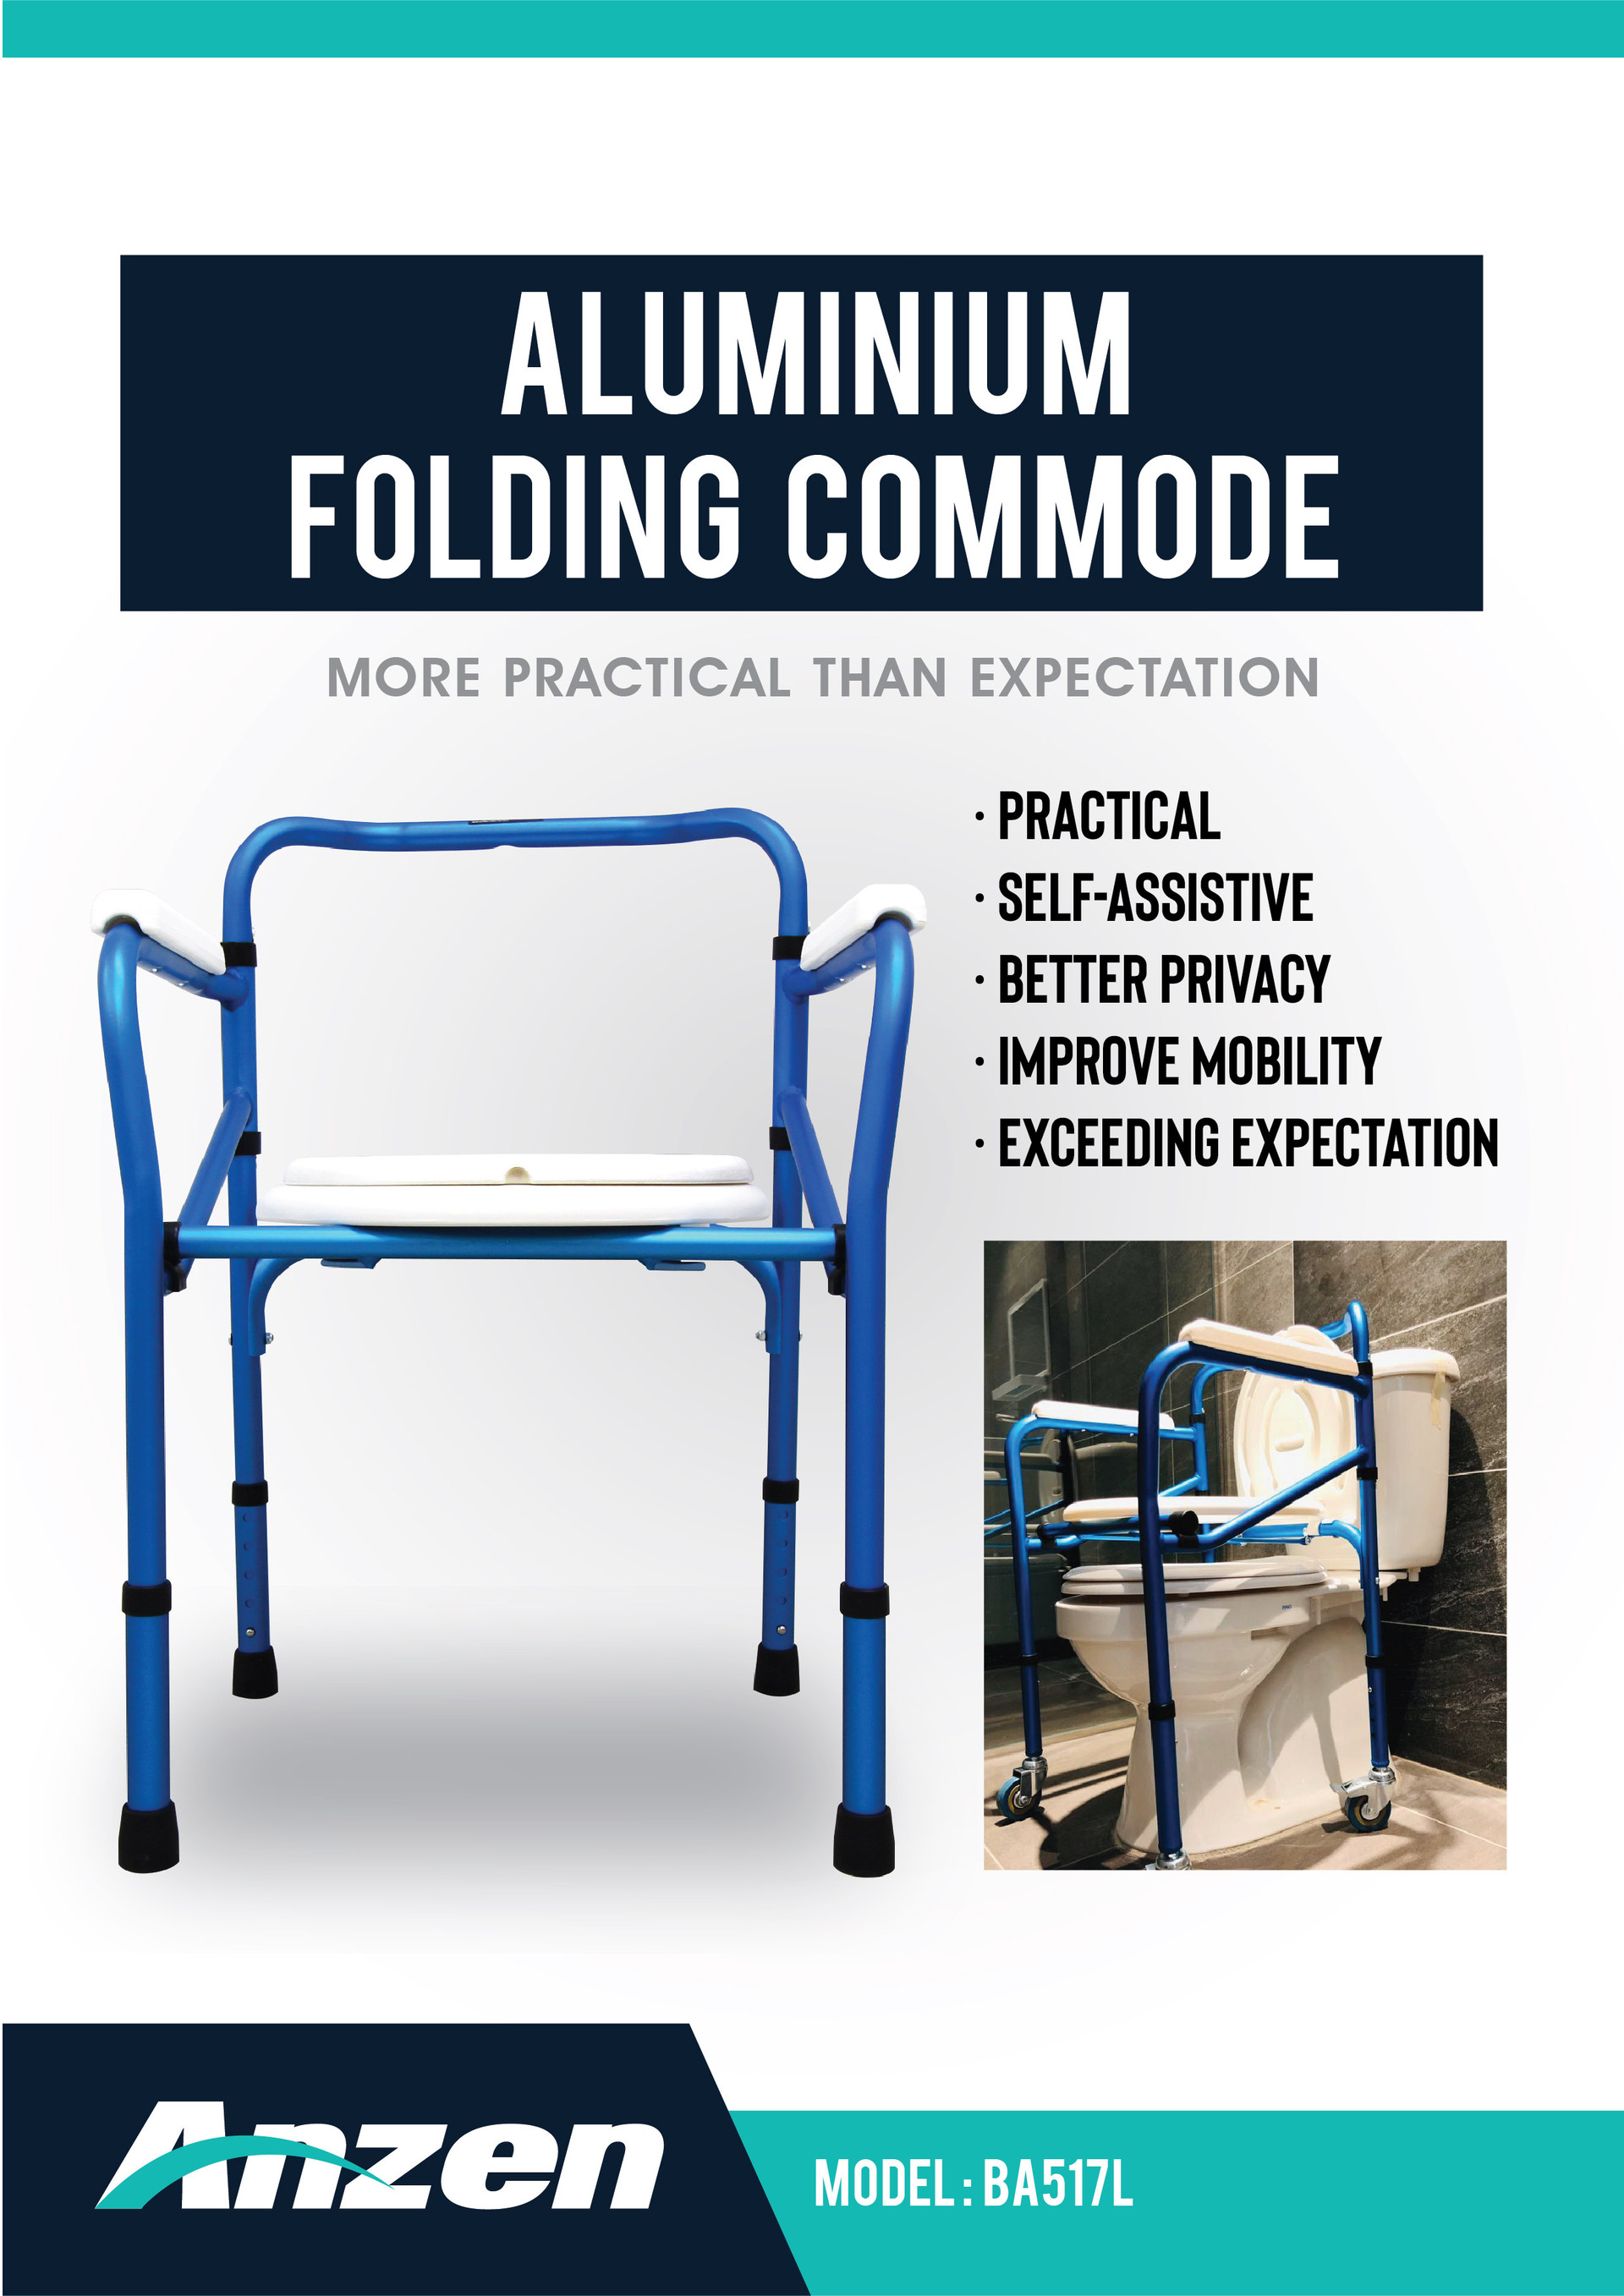 Commode Chair-23Jan2020-02.jpg